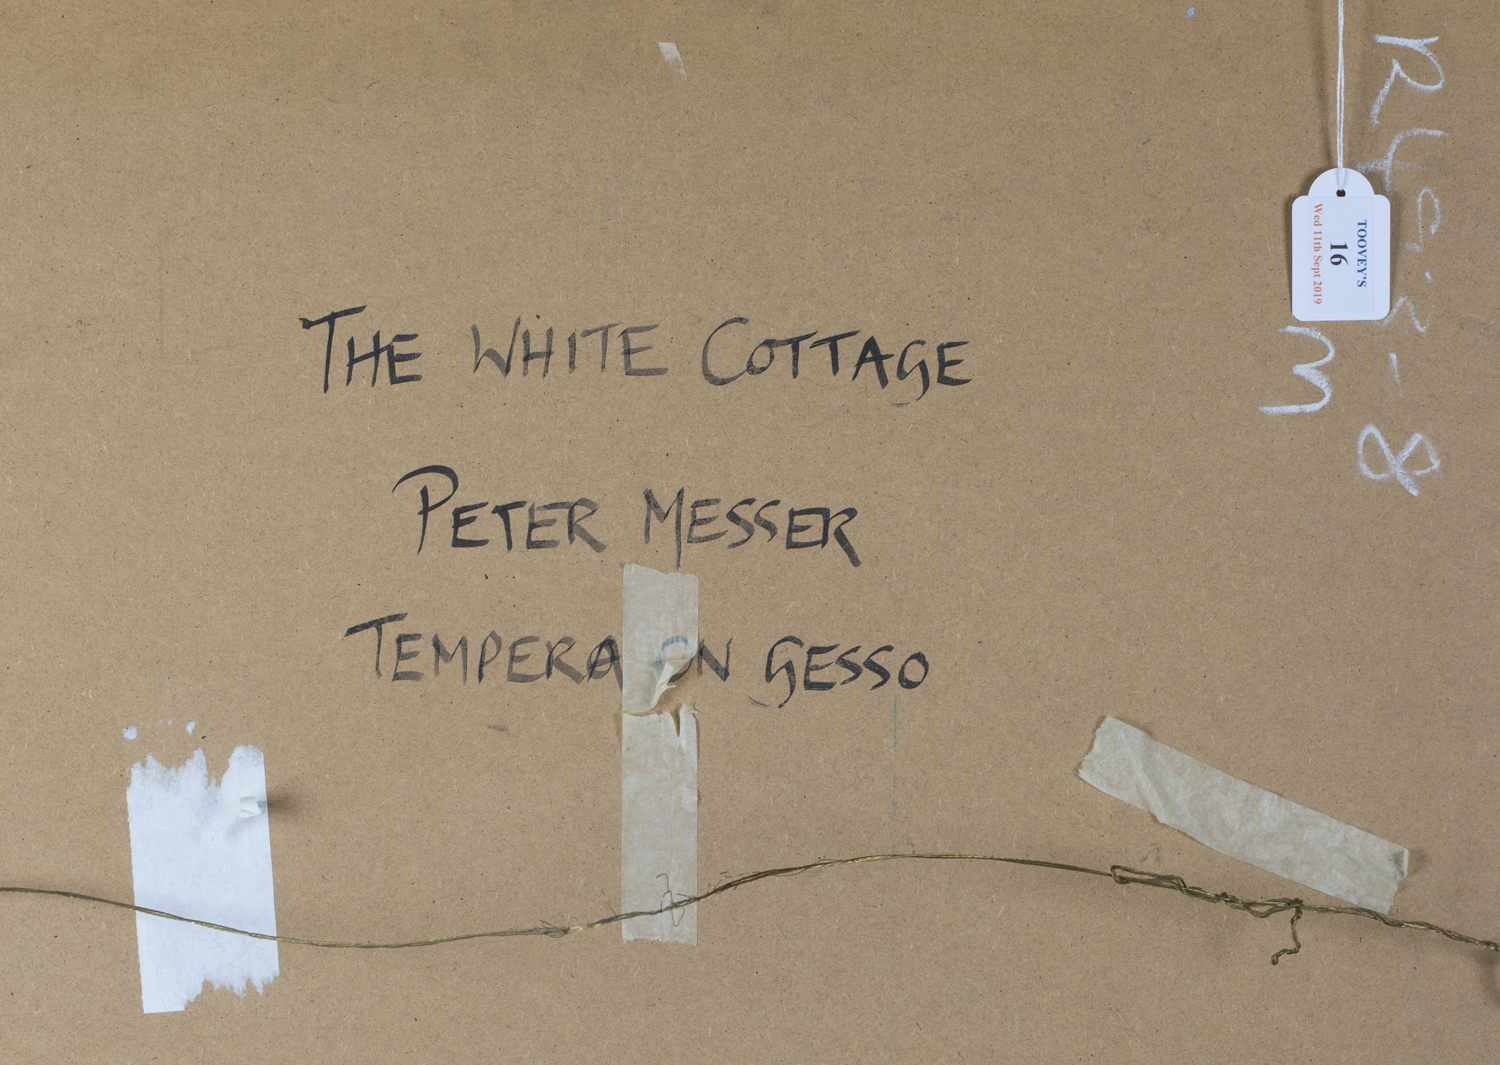 Lot 16 - Peter Messer - 'The White Cottage', 20th century tempera on board, signed recto, titled verso, 75.